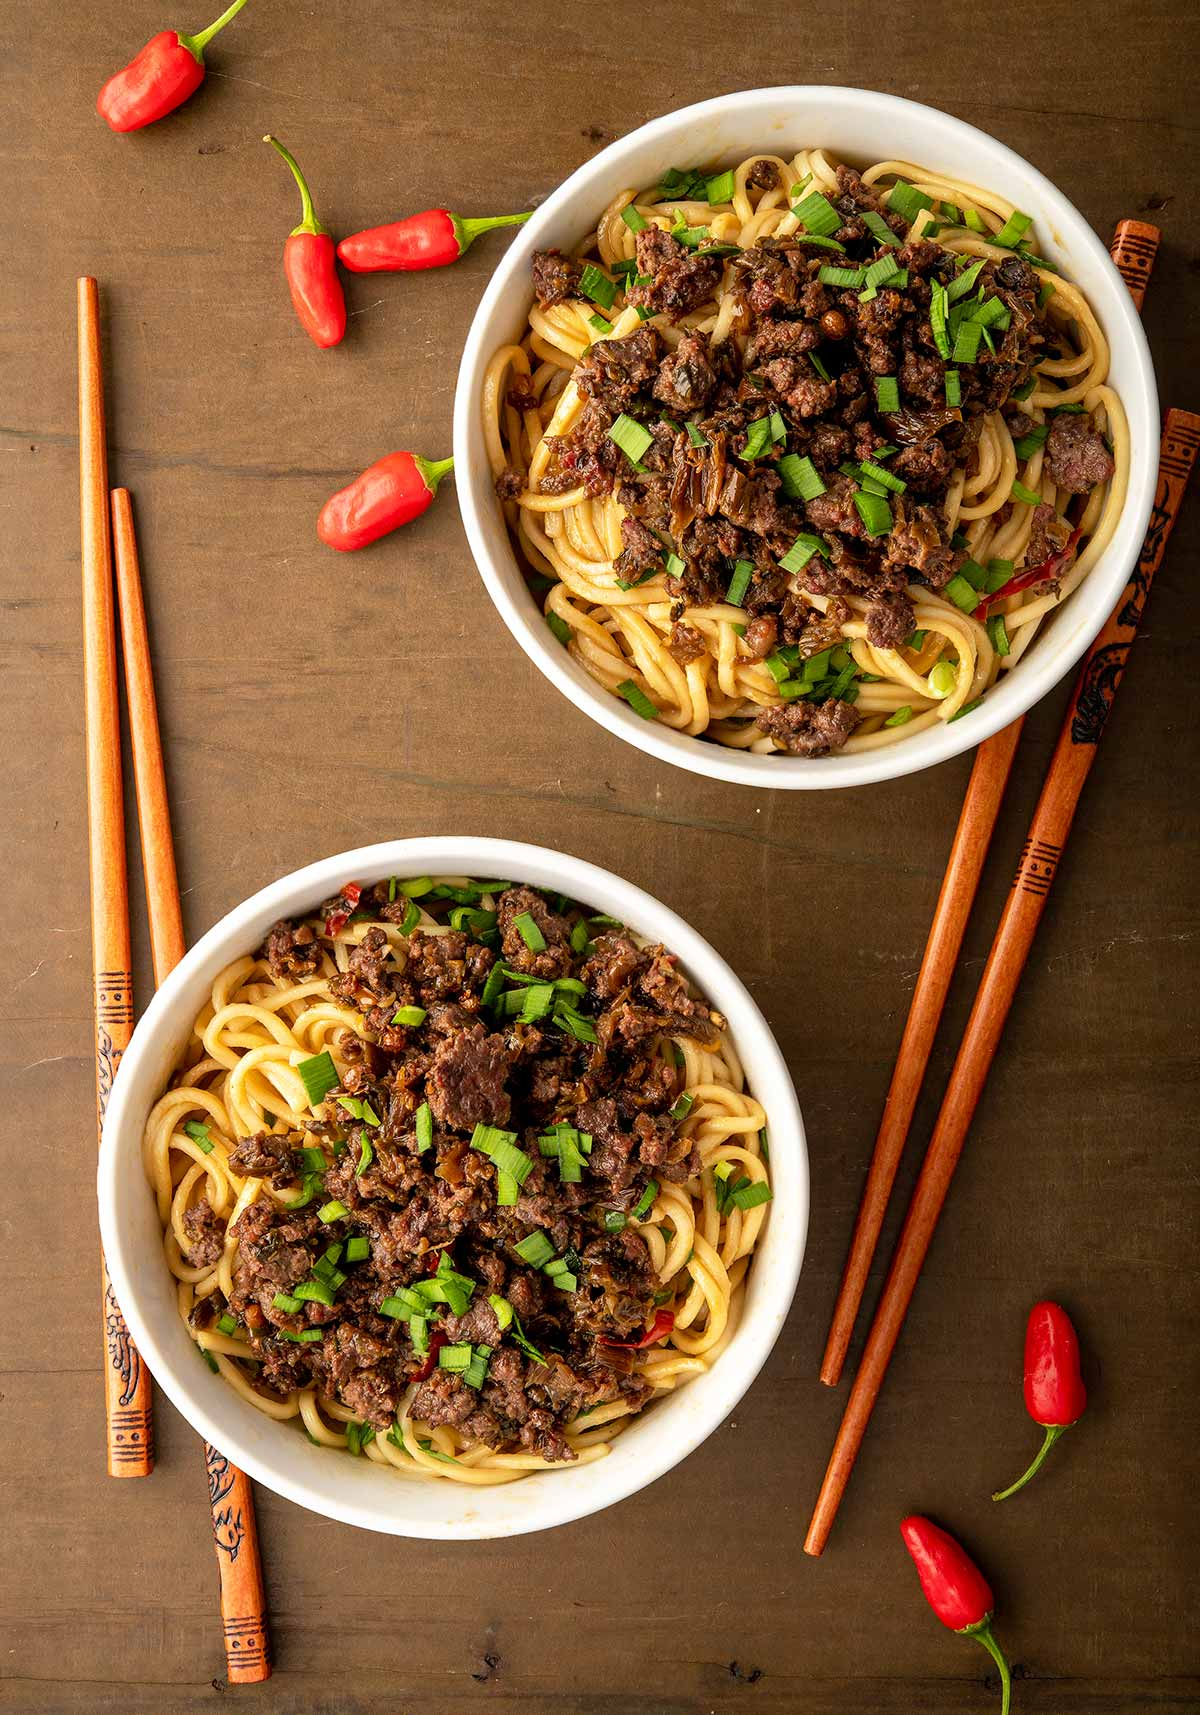 Finished dan dan noodles recipe, with two bowls